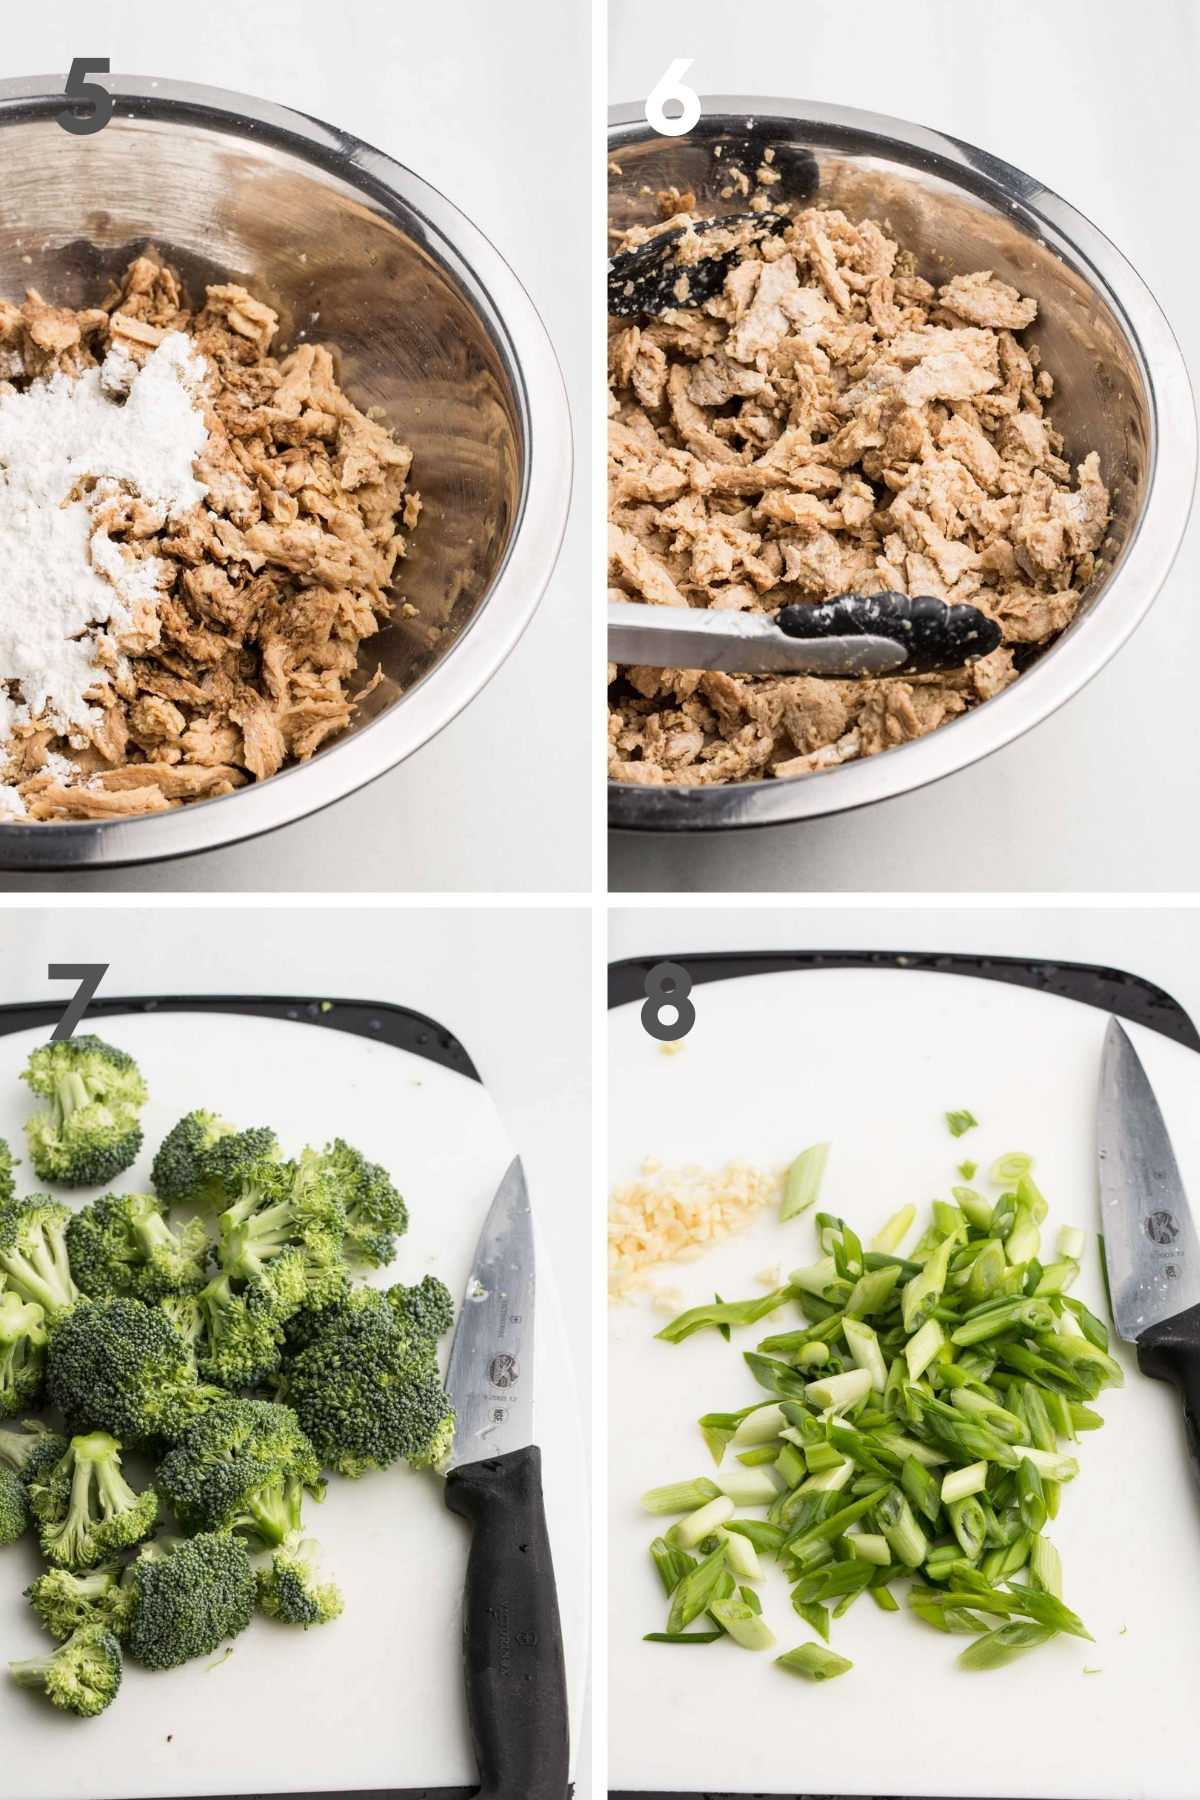 steps 5-8 of making vegan beef and broccoli: soy curls and cornstarch in bowl, chopped broccoli on cutting board, and chopped scallions/garlic on cutting board